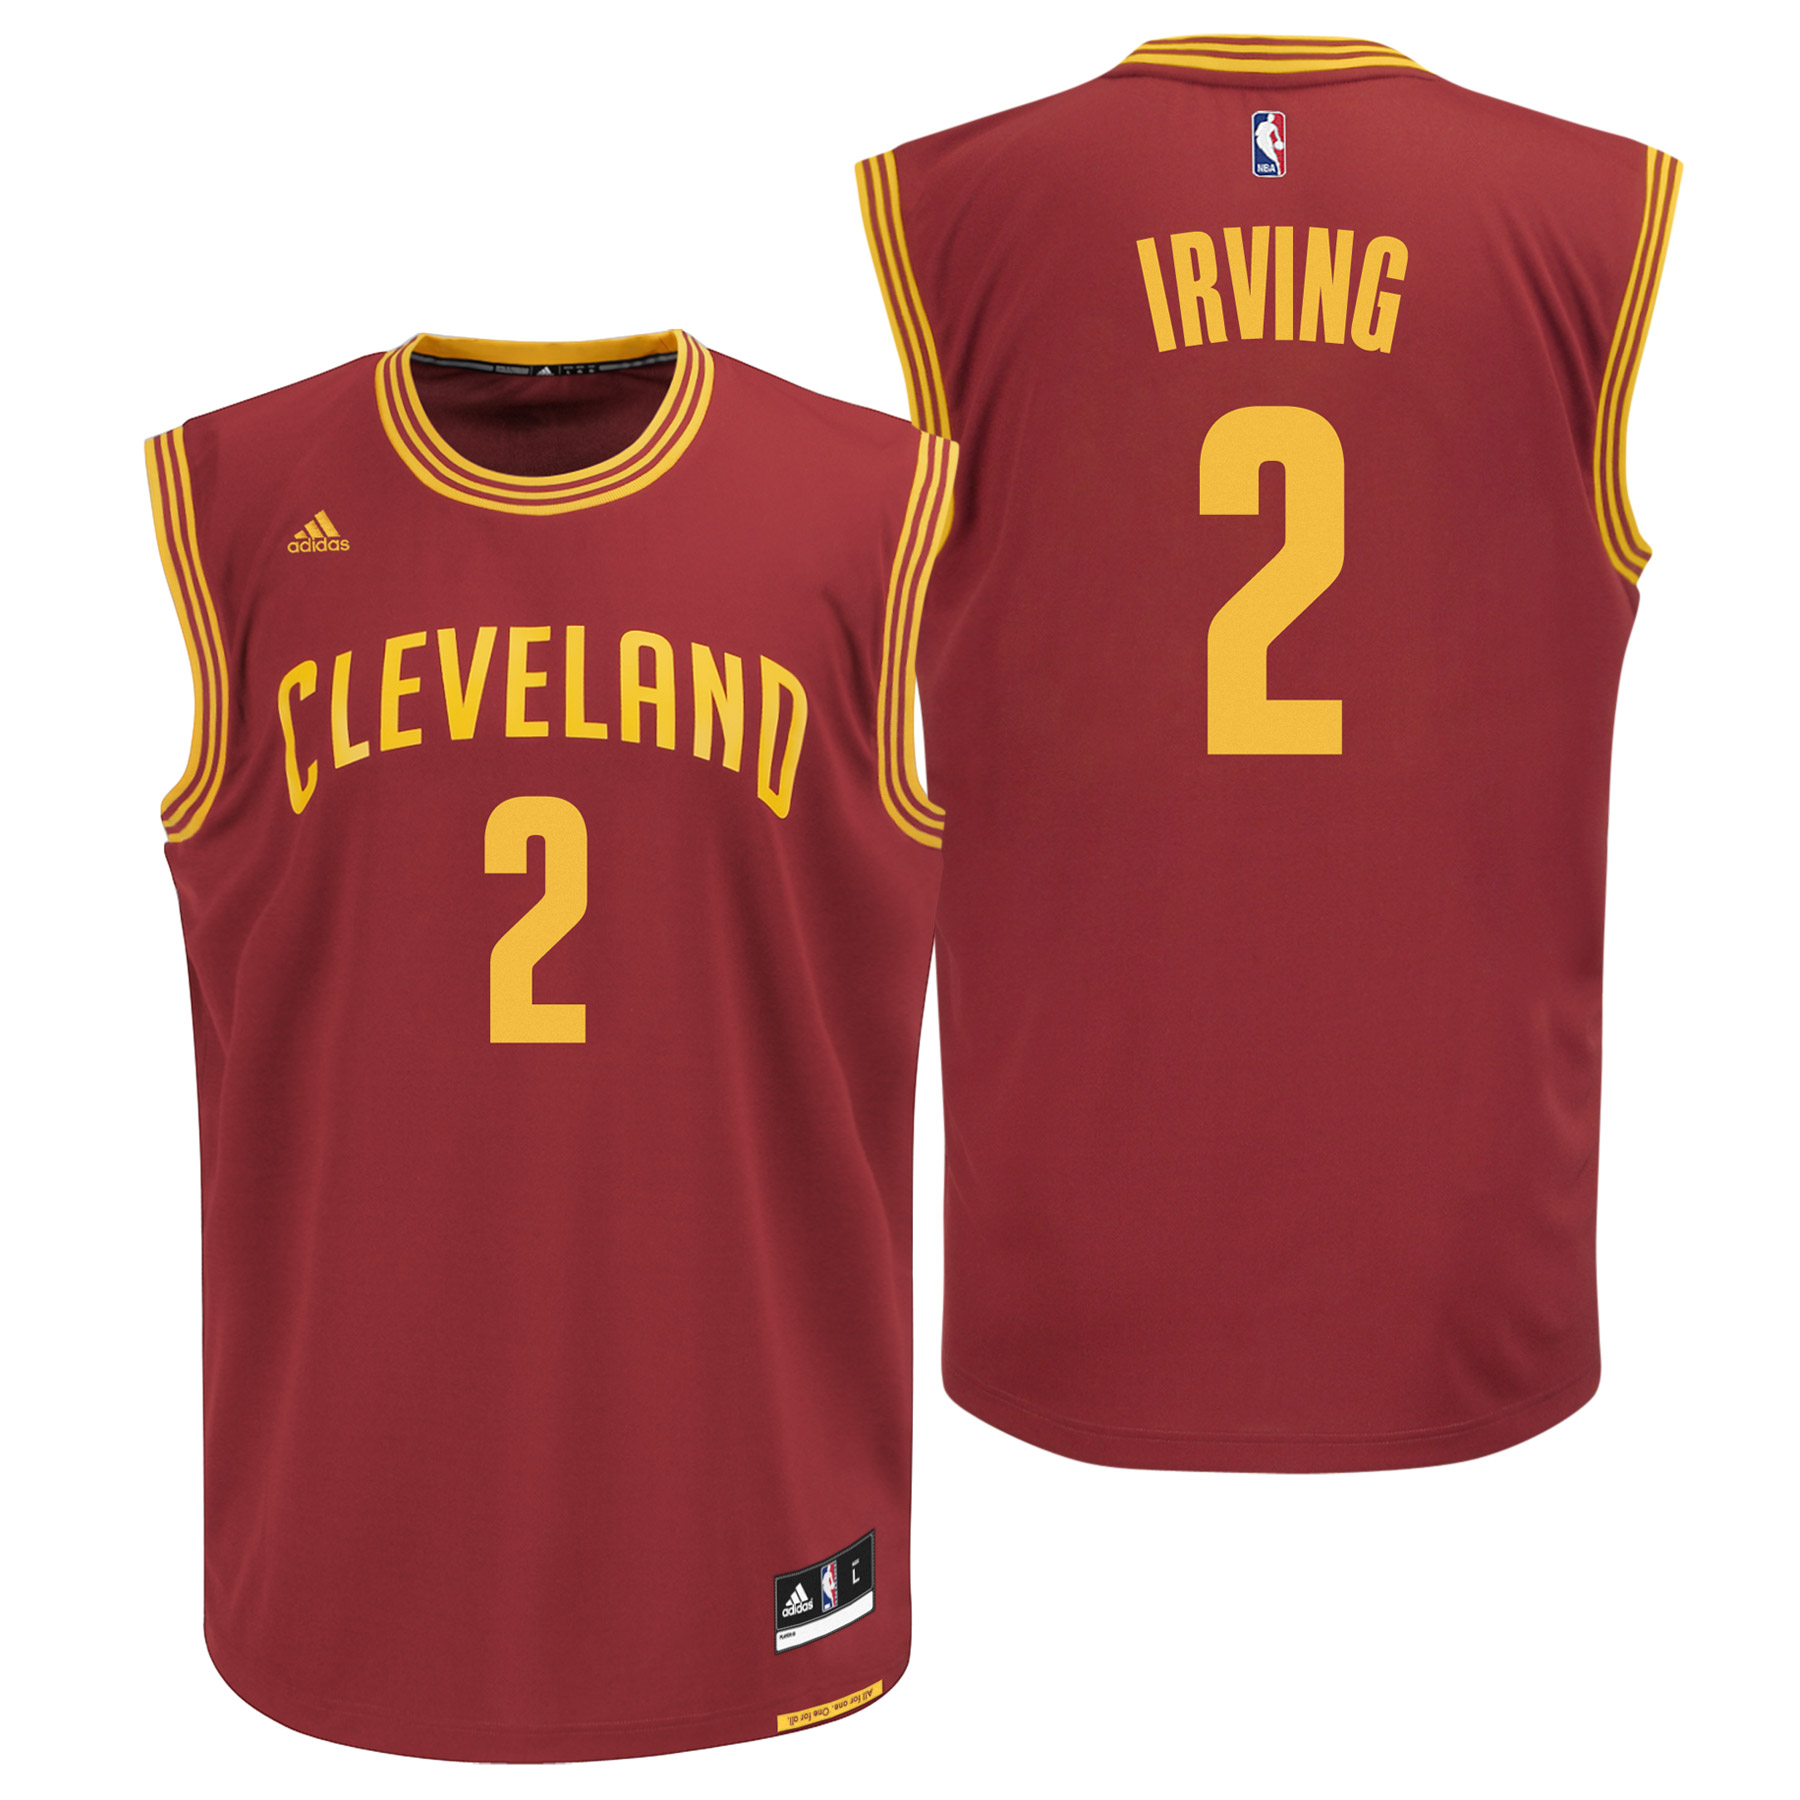 Cleveland Cavaliers Road Replica Jersey - Kyrie Irving - Mens